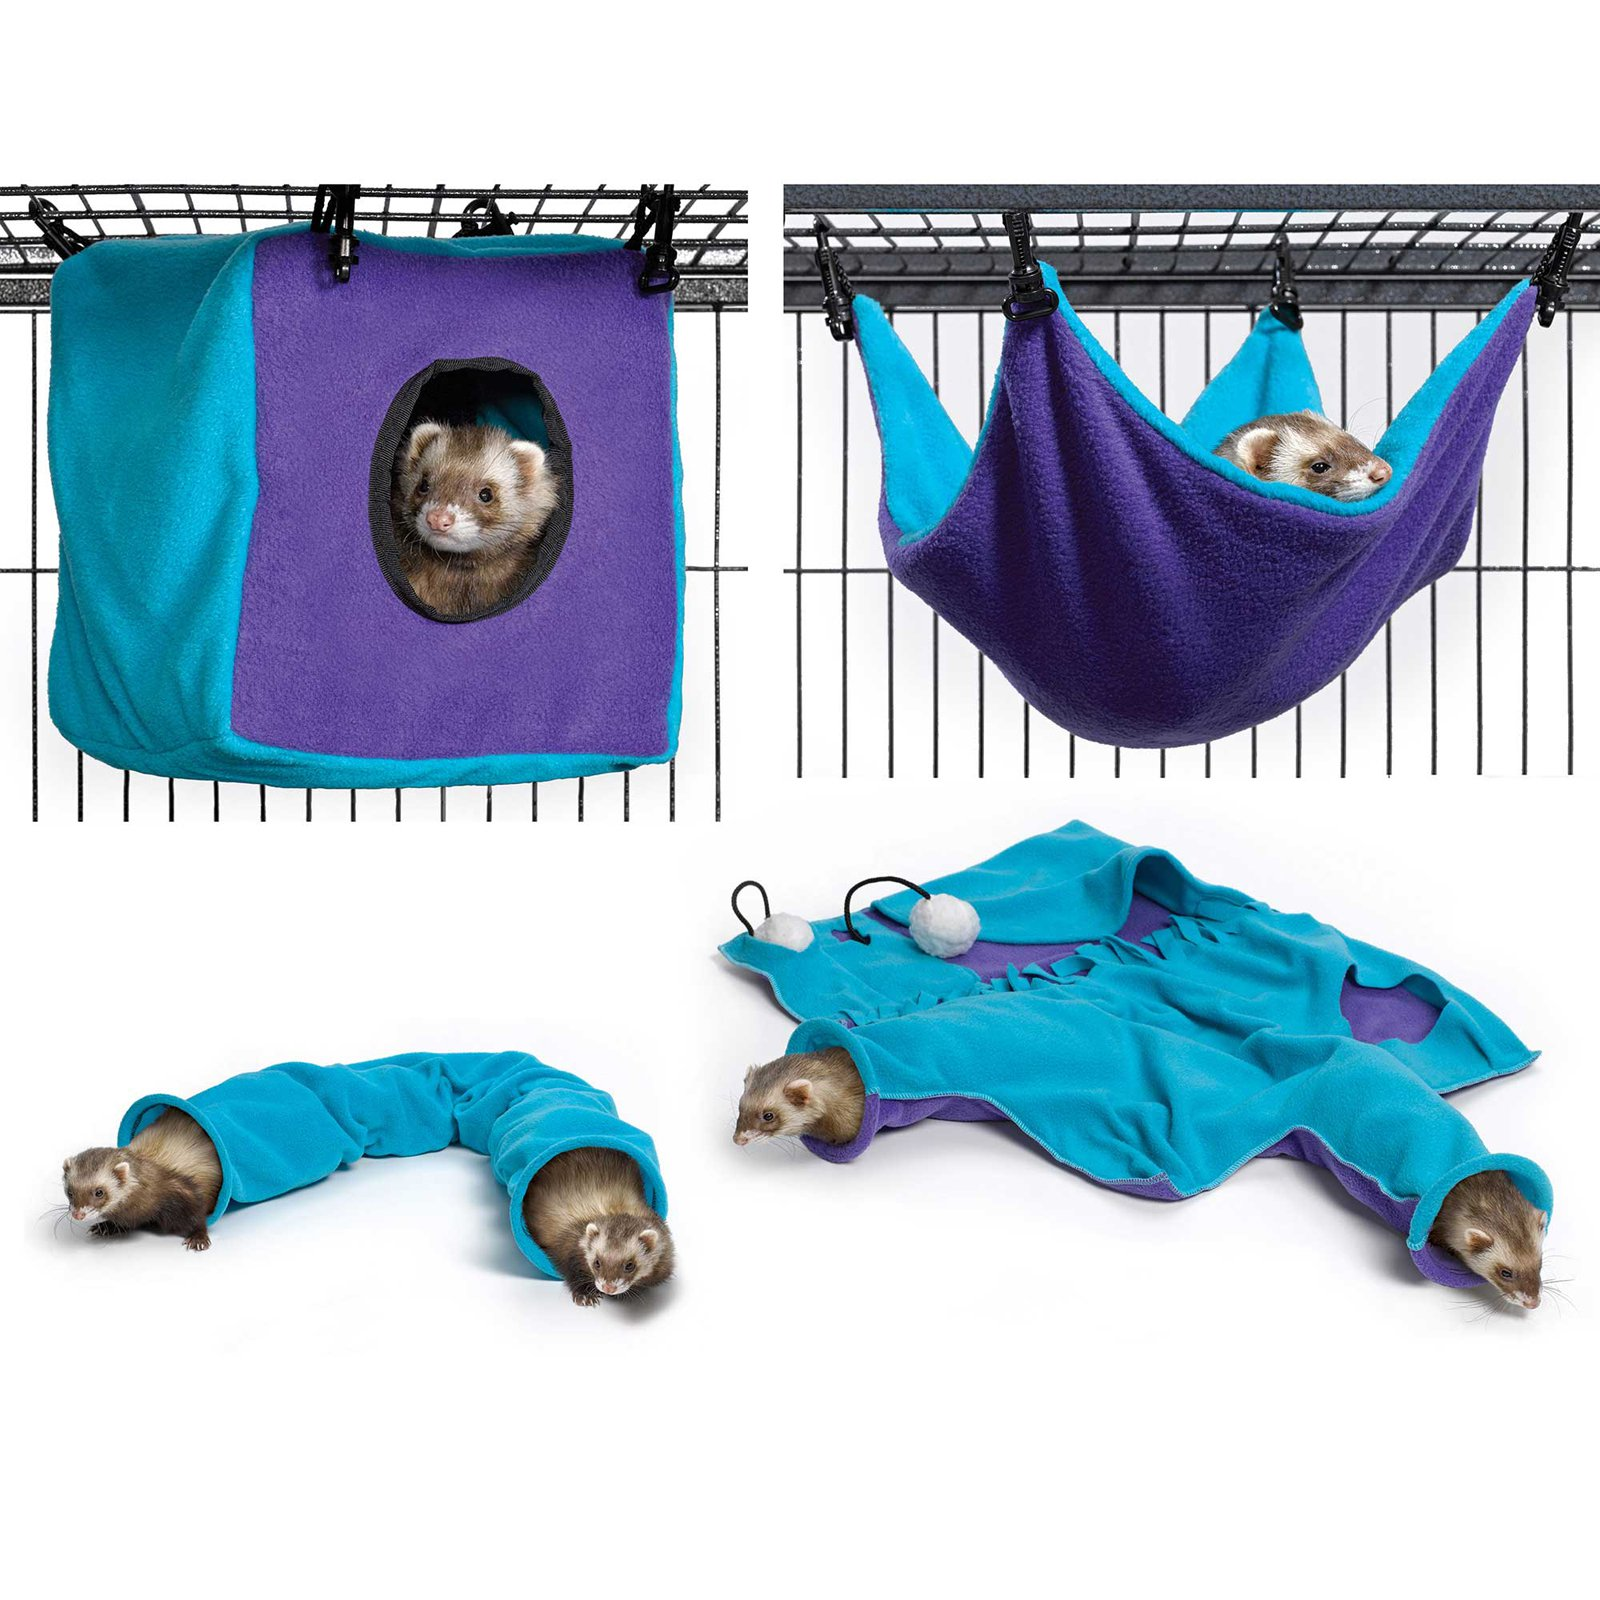 Midwest Homes for Pets Ferret/Critter Nation Accessory Kit 3